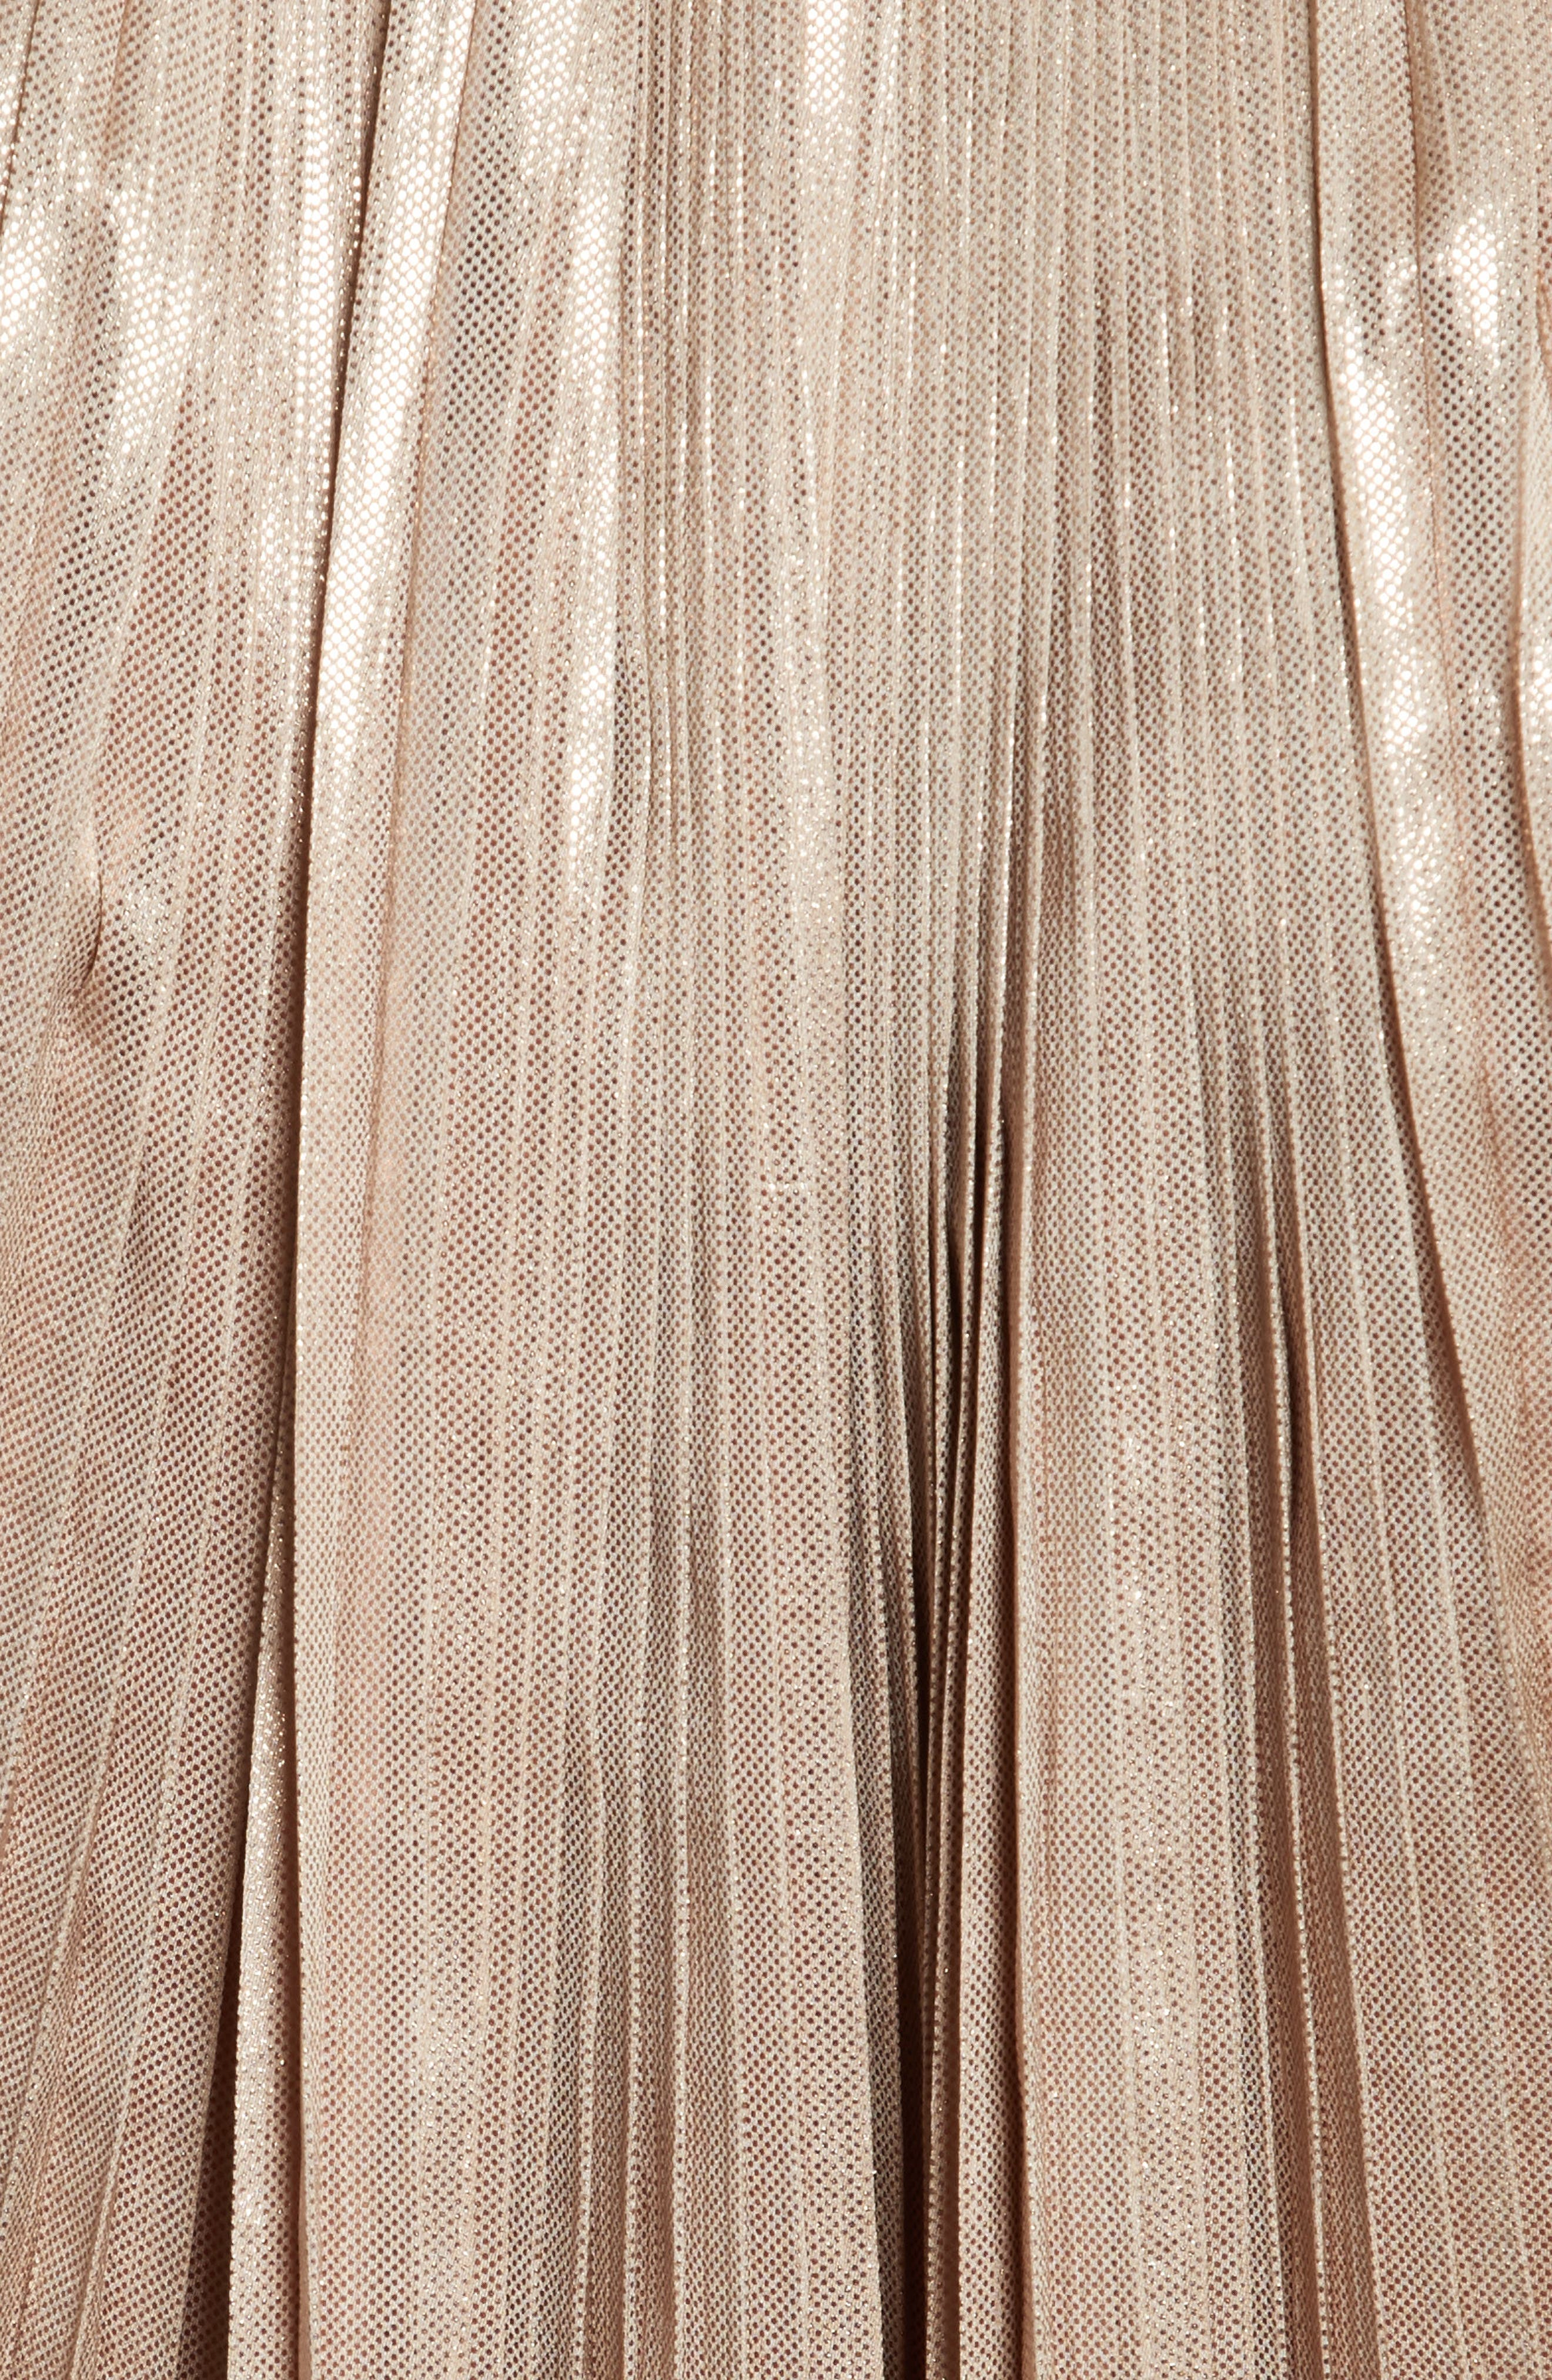 Alternate Image 5  - Opening Ceremony Foil Pleated Top